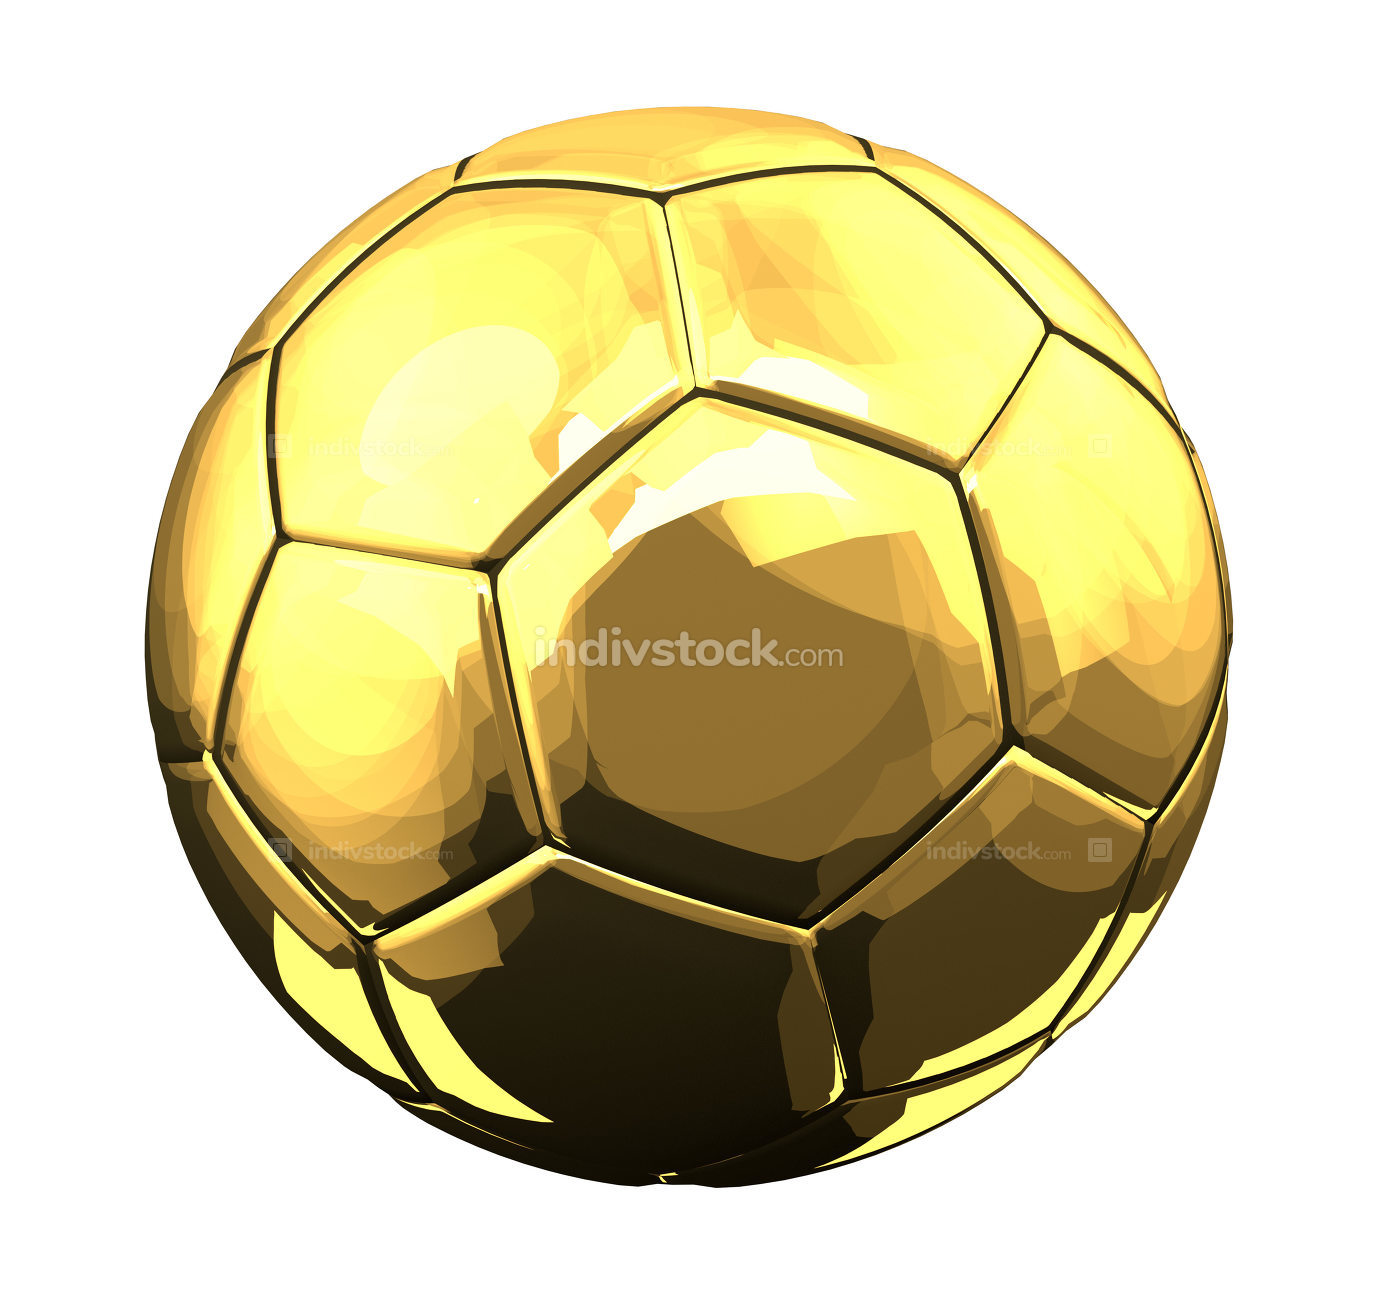 golden elegance luxury fooball soccer ball 3d rendering